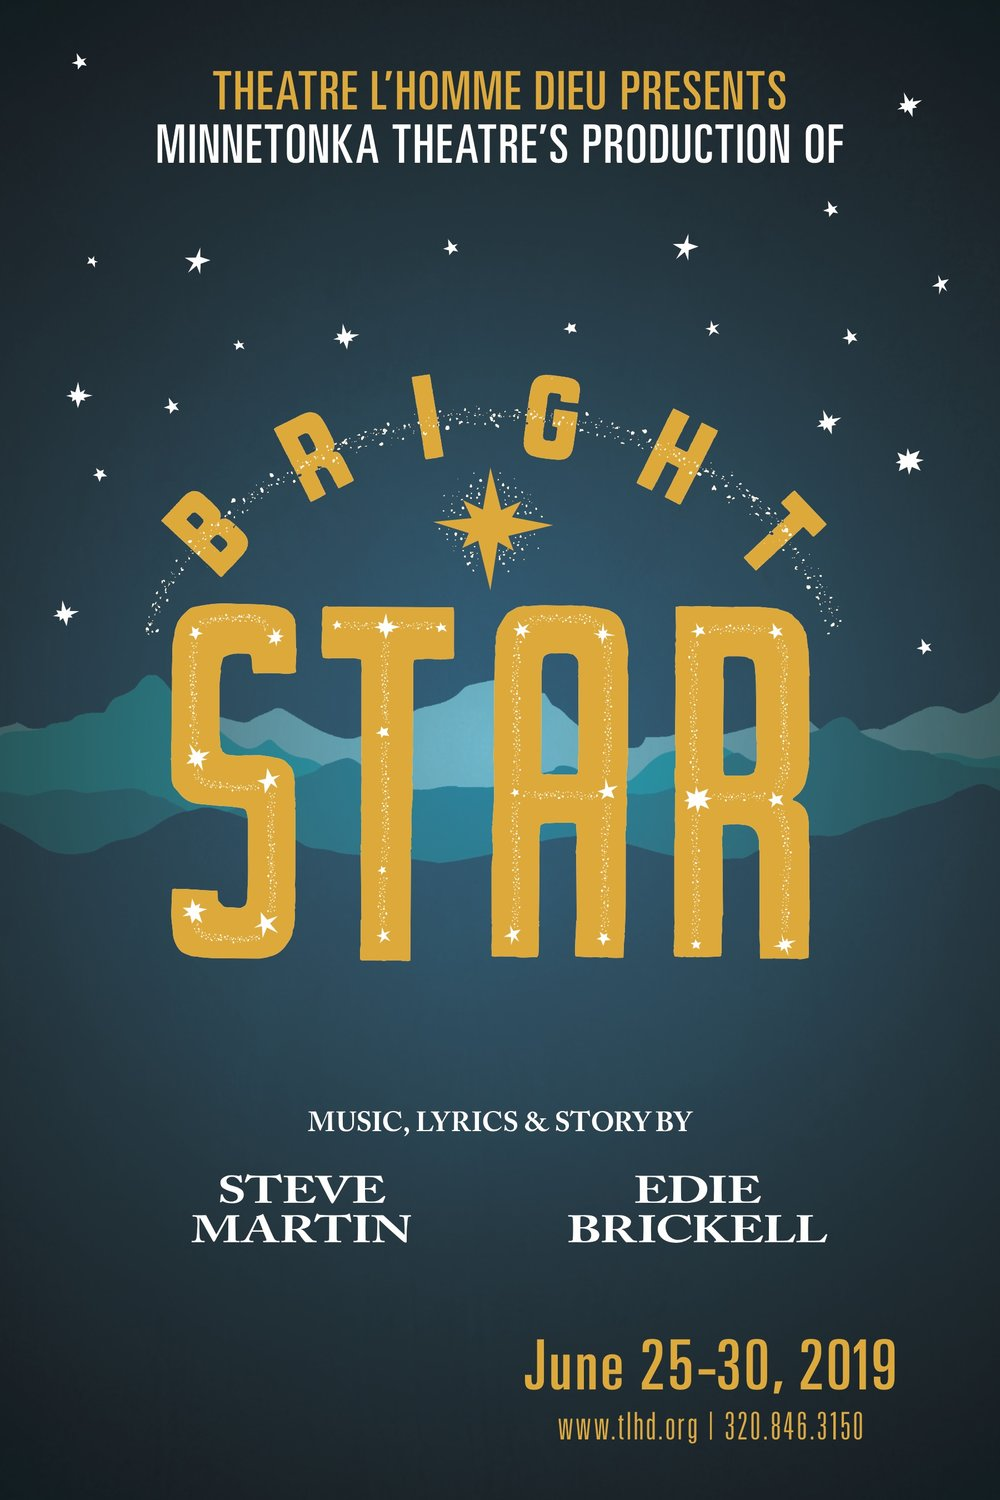 Bright_Star_Poster_Summer2019_012319-noCrops.jpg